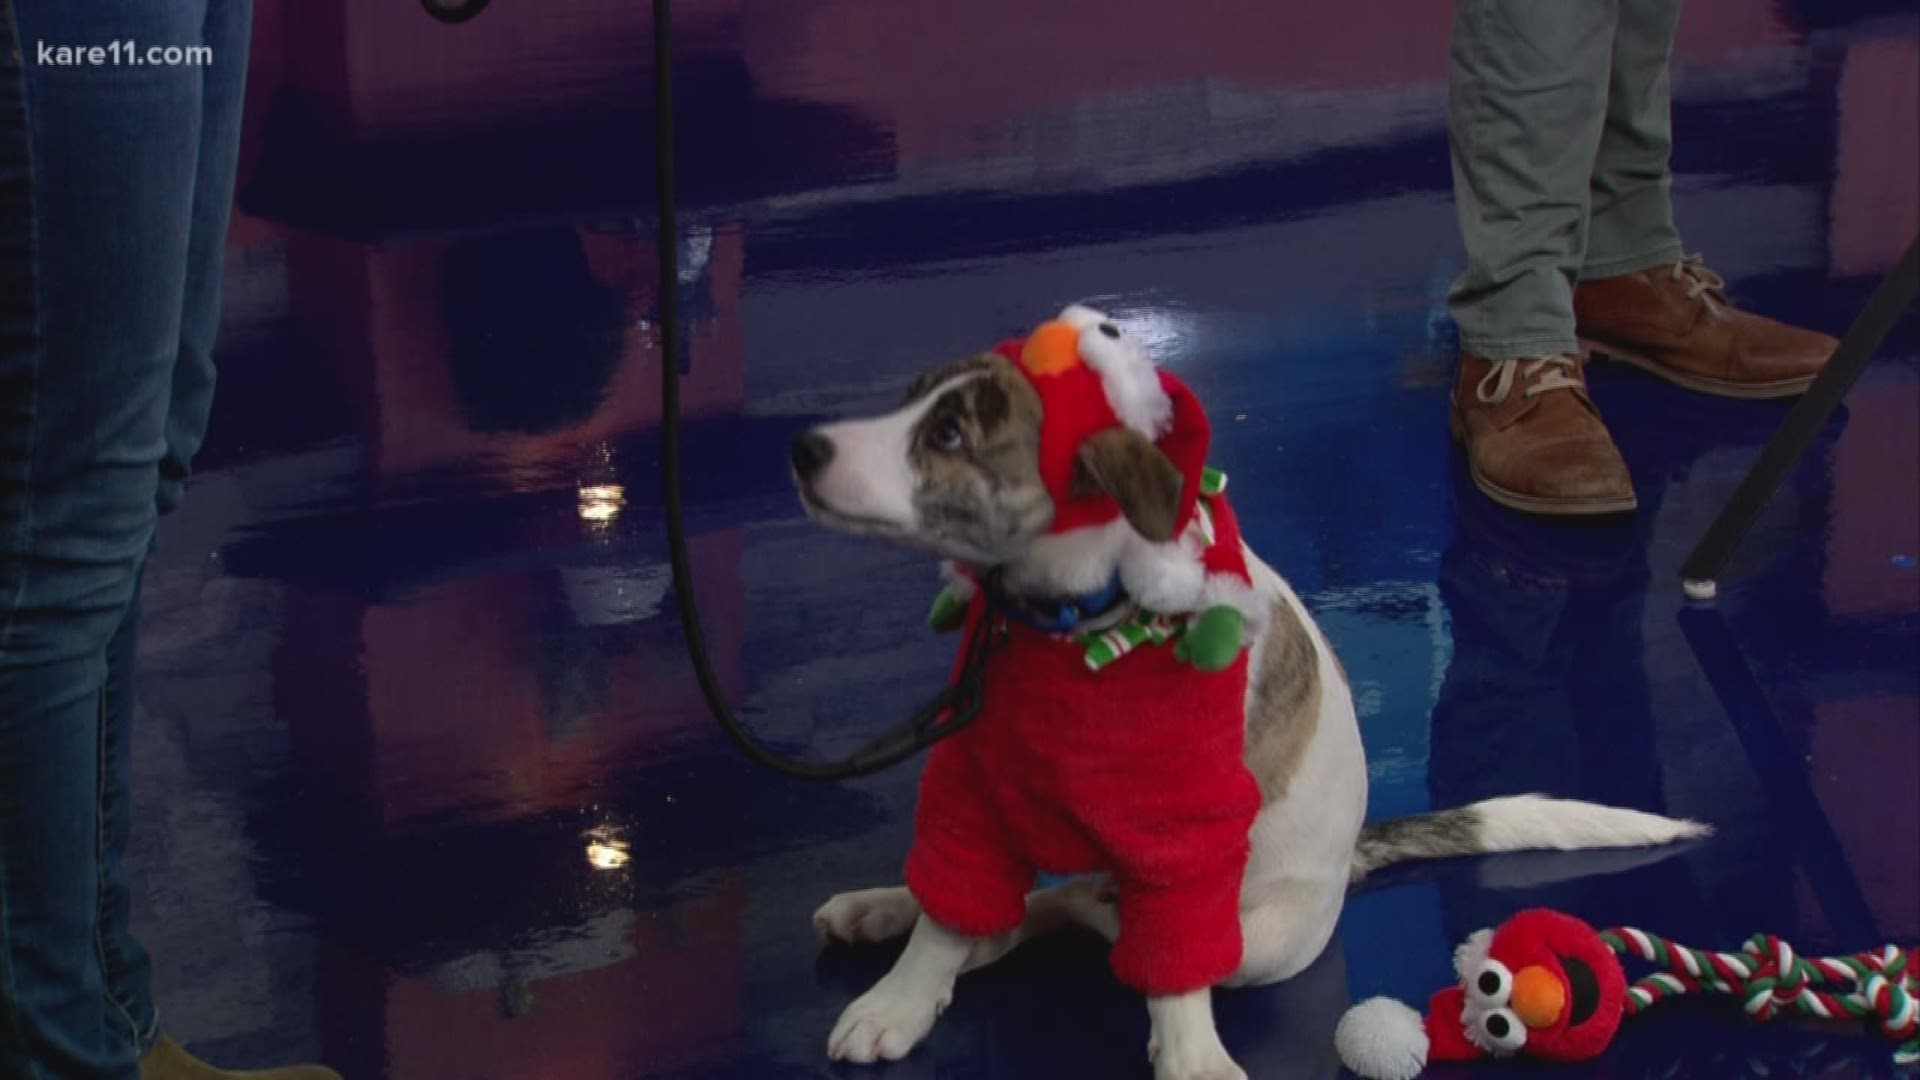 Calming Dog Biscuit Also Helps Animal Humane Society Kare11 Com